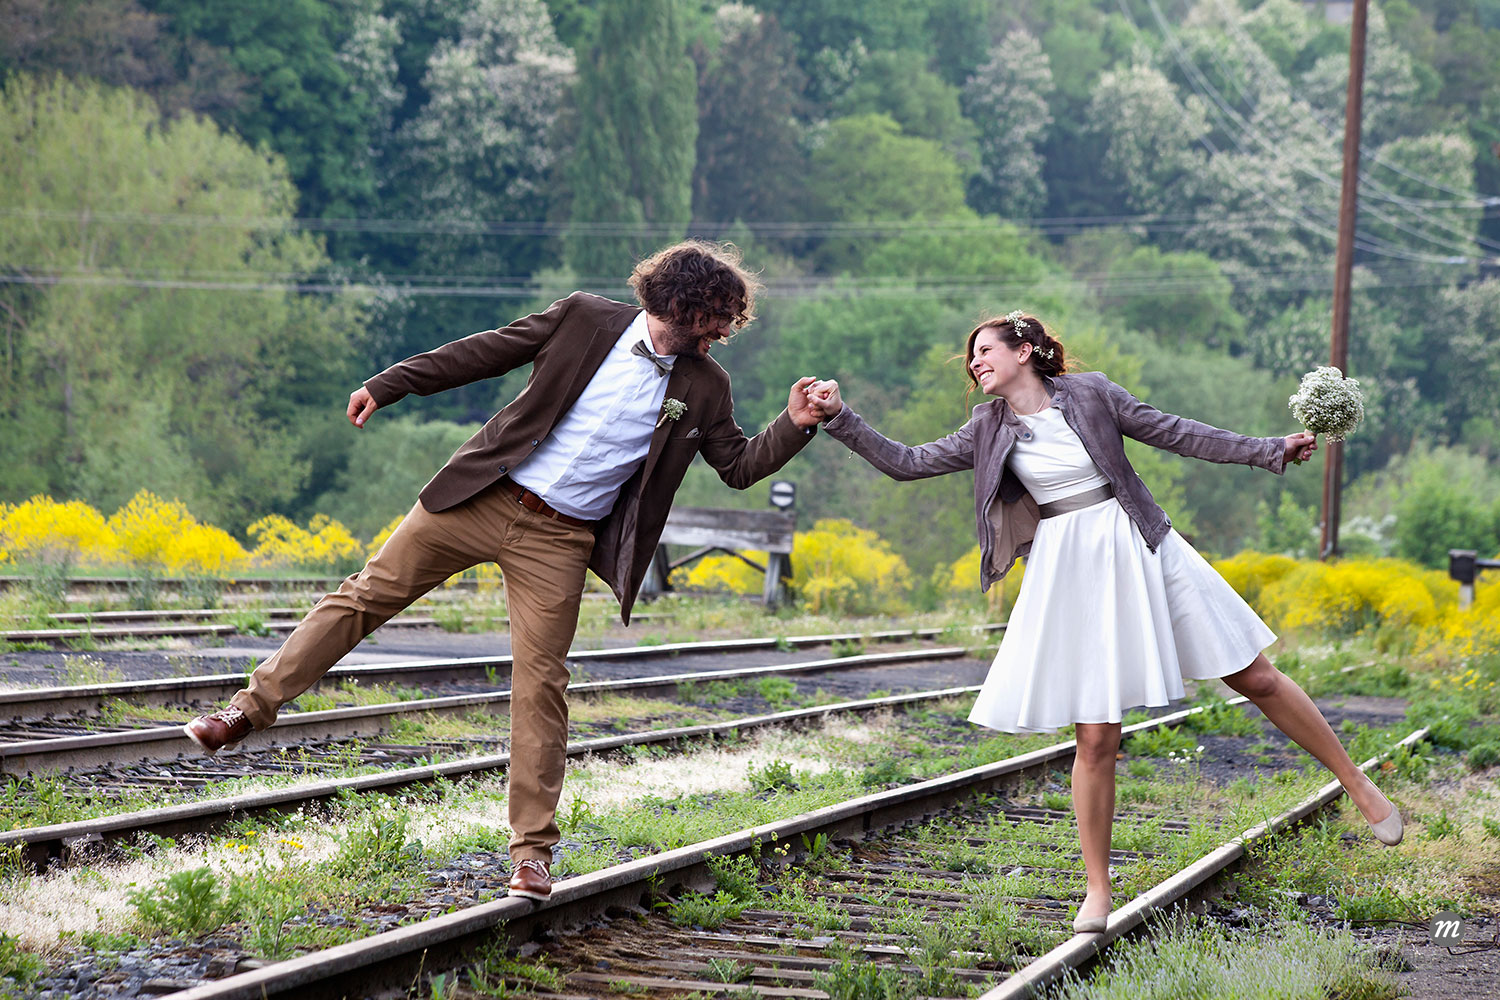 Bridal and groom balancing on train tracks  ©  Westend61 / Masterfile